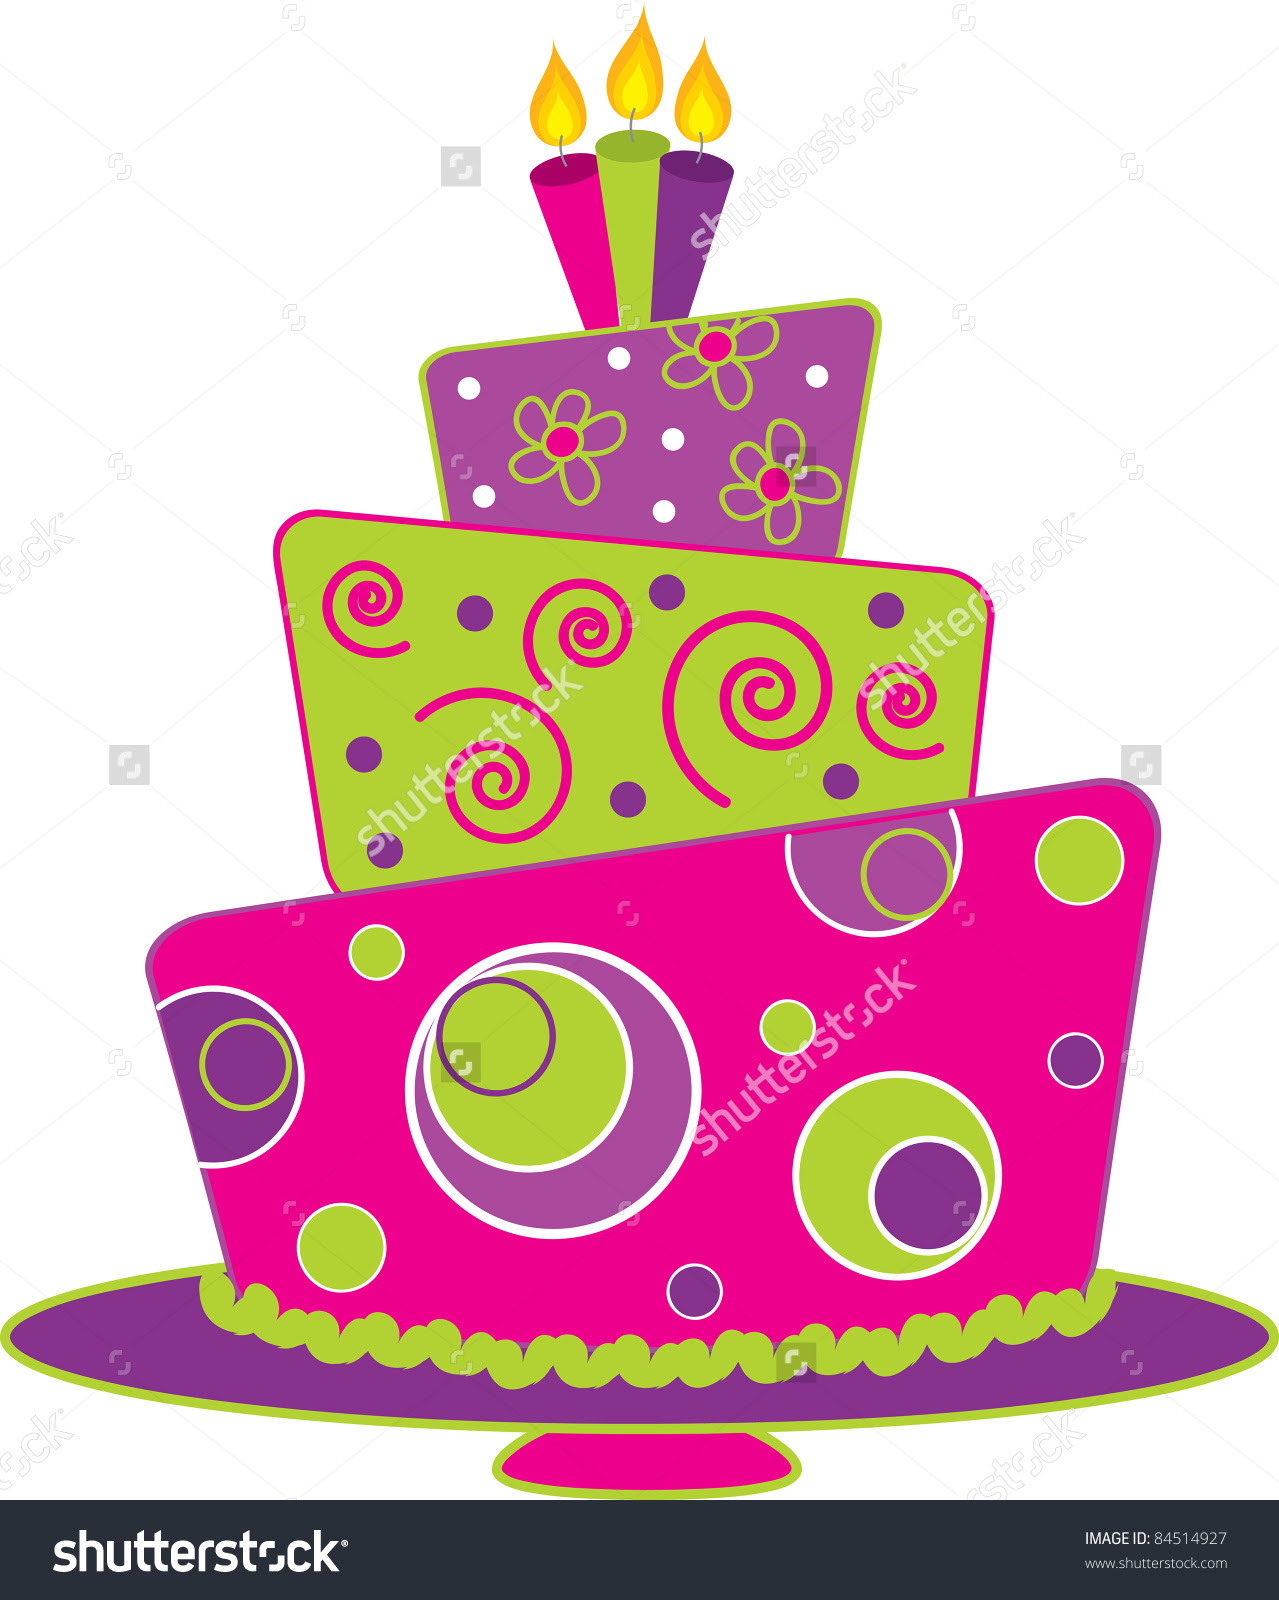 Cake Stock Illustrations Cliparts And Royalty Free Cake Vectors